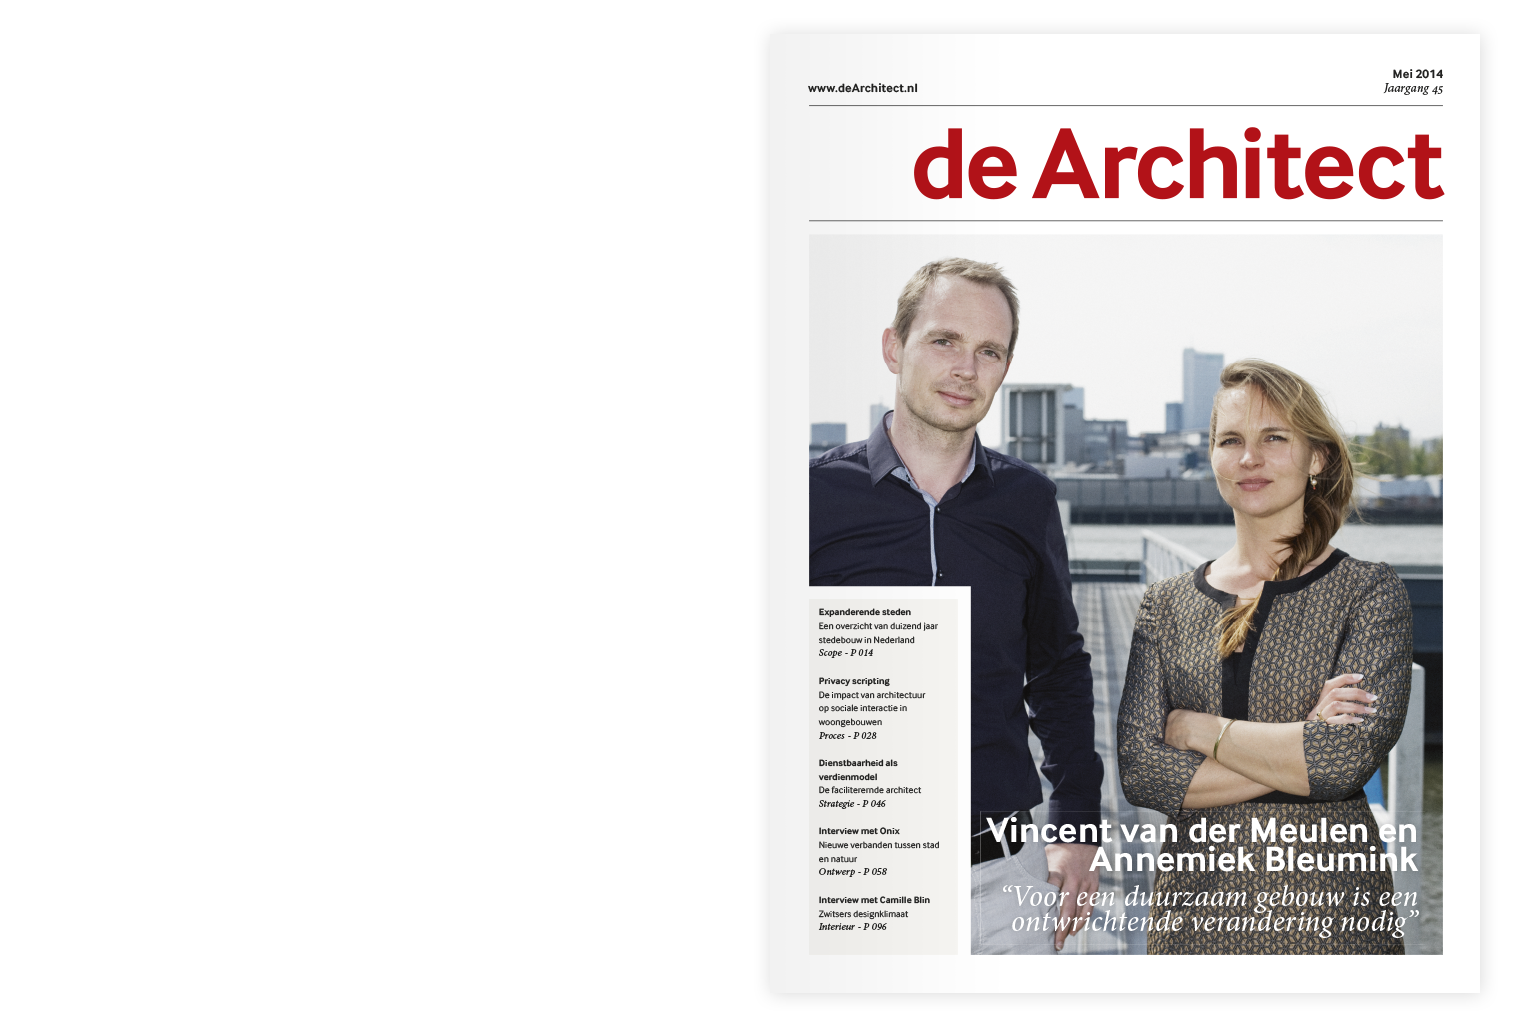 motif-de_architect-cover